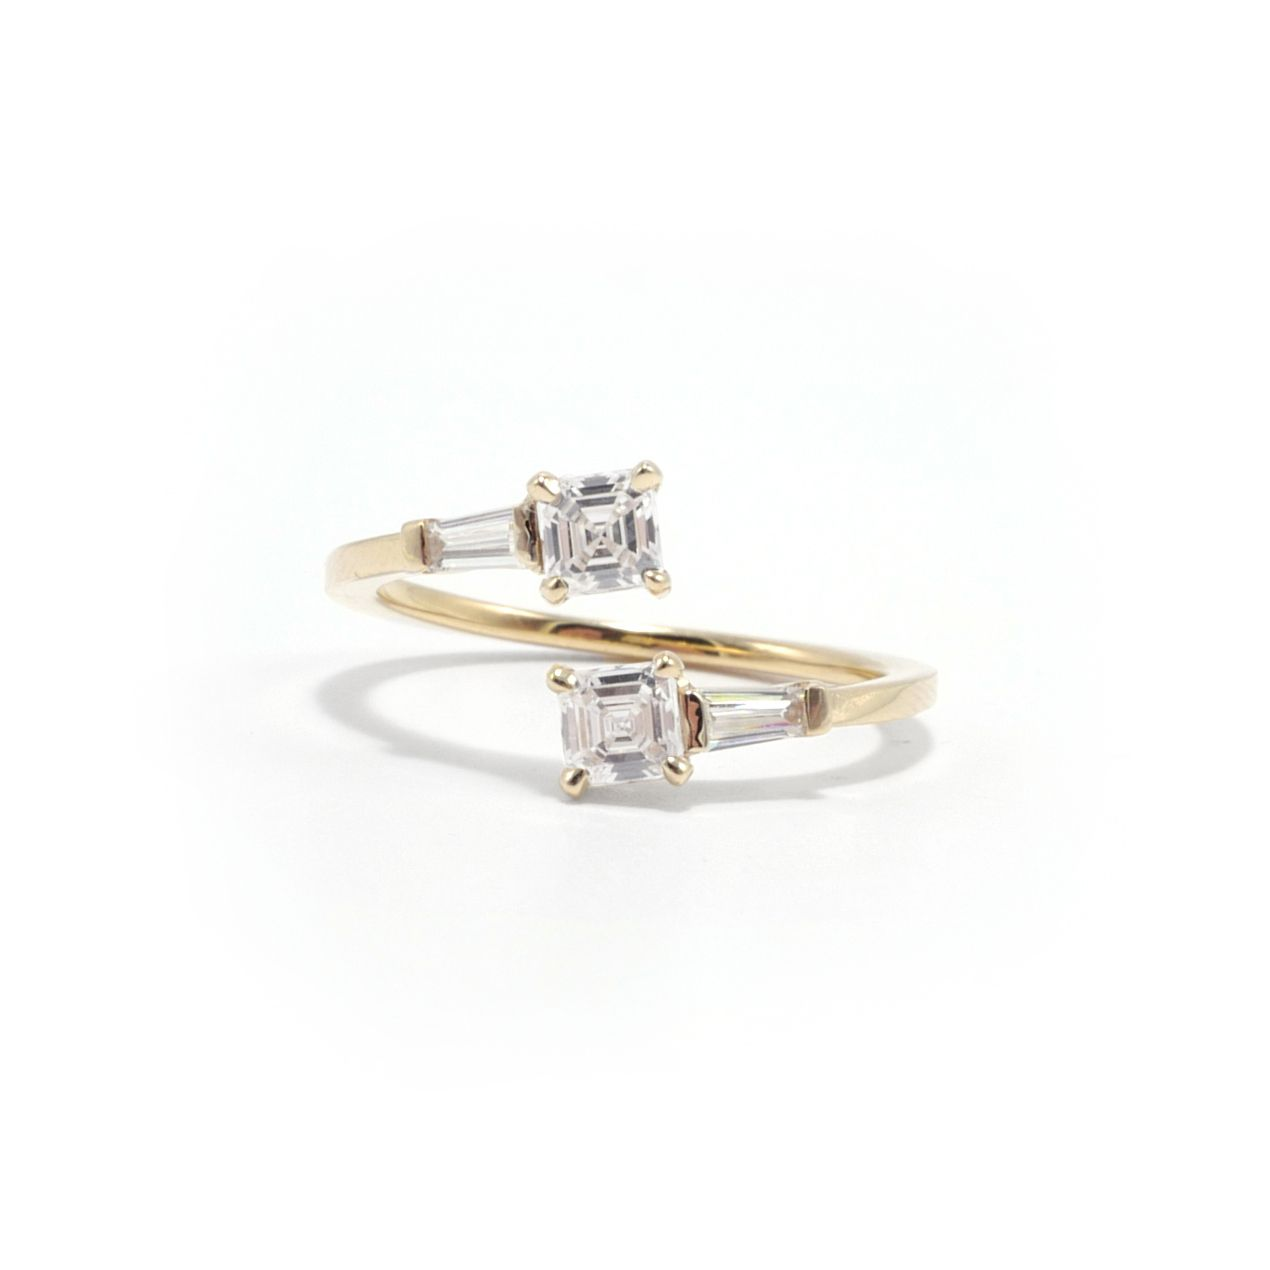 Two-stone diamond engagement ring with yellow gold band on a white background